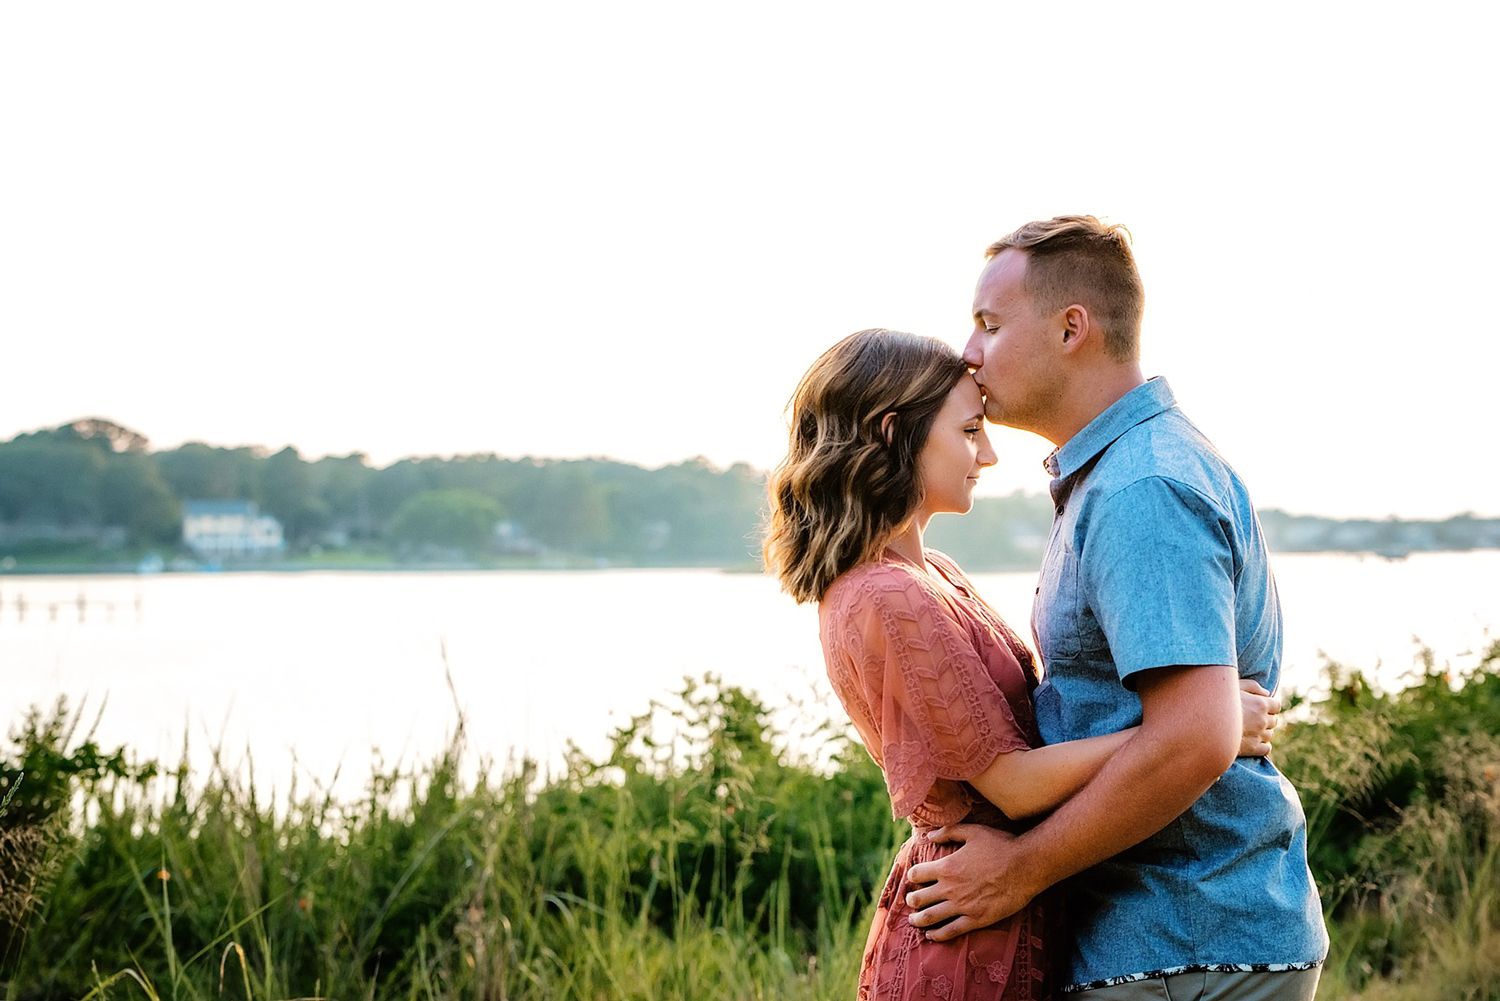 sweet-romantic-moment-engagement-pictures-at-sunset-norfolk-wedding-photographer-melissa-bliss-photography.jpg